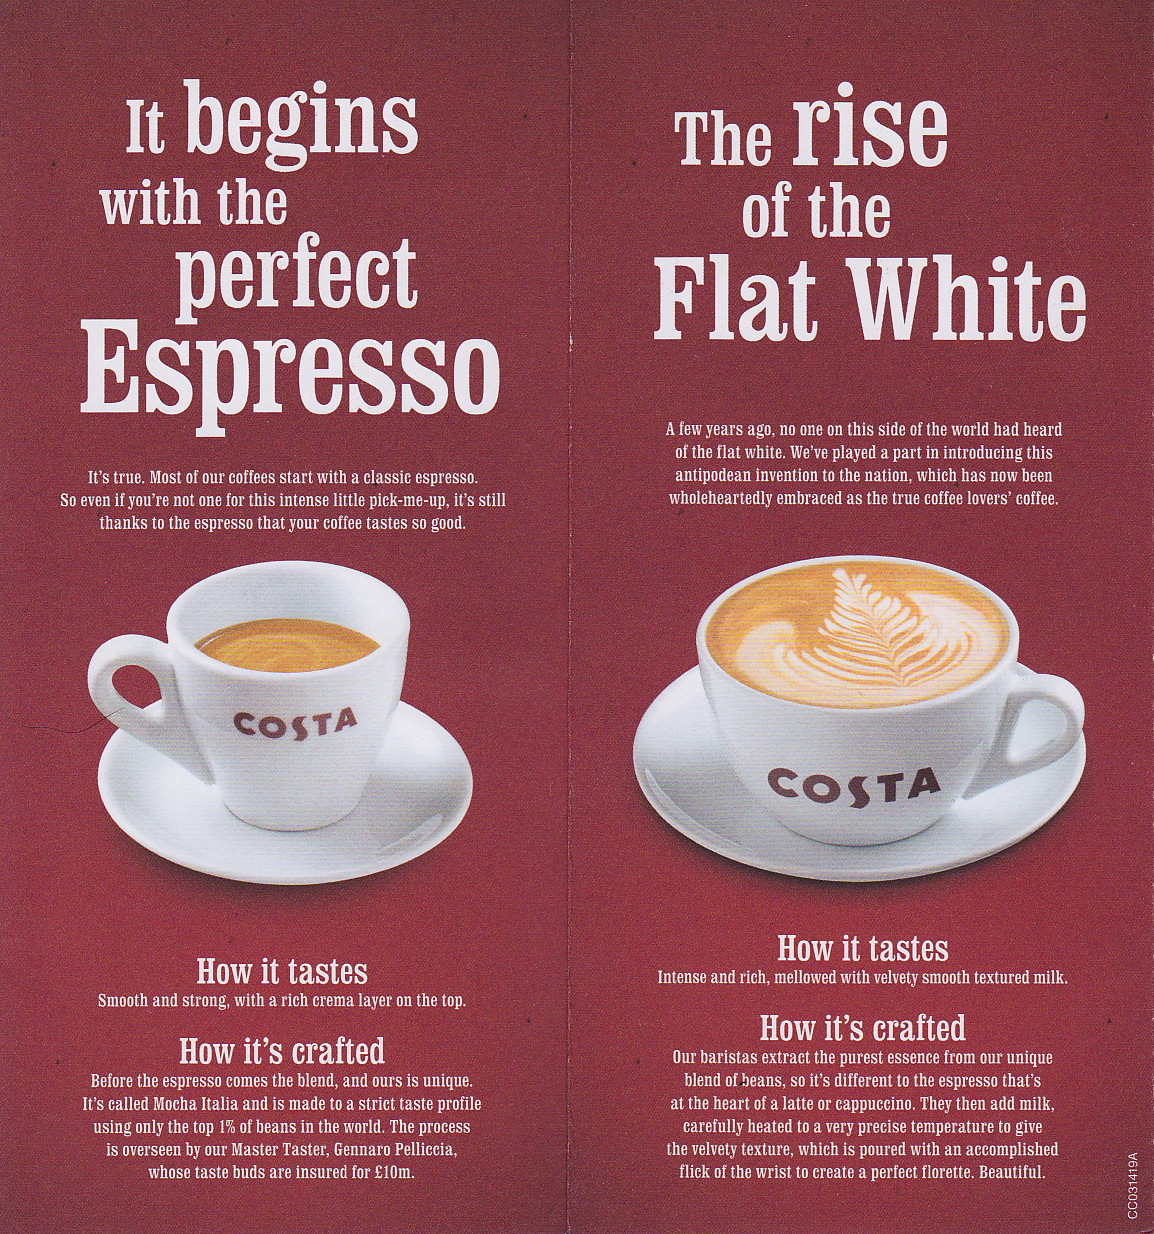 Costa Coffee Fonts In Use